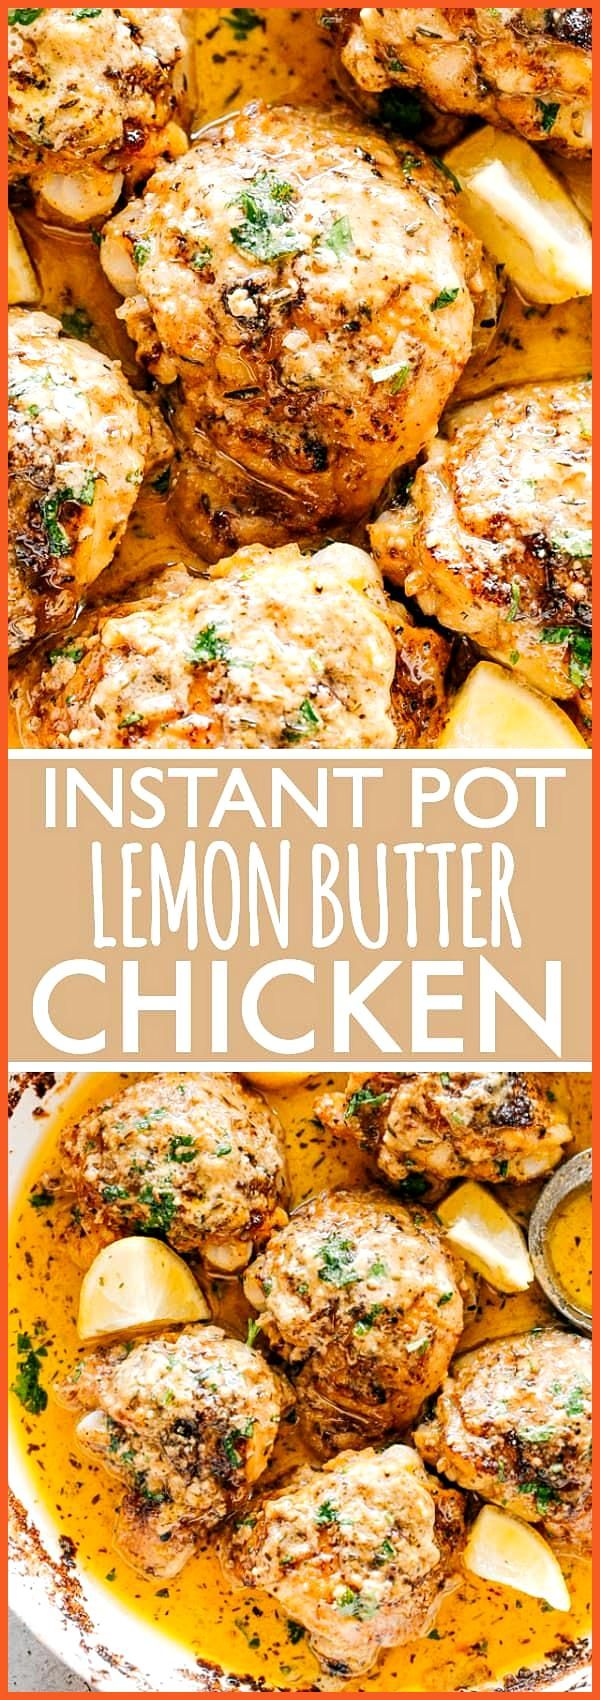 Instant Pot Lemon Butter Chicken  Juicy and tender chicken thighs cooked in the Instant Pot with th